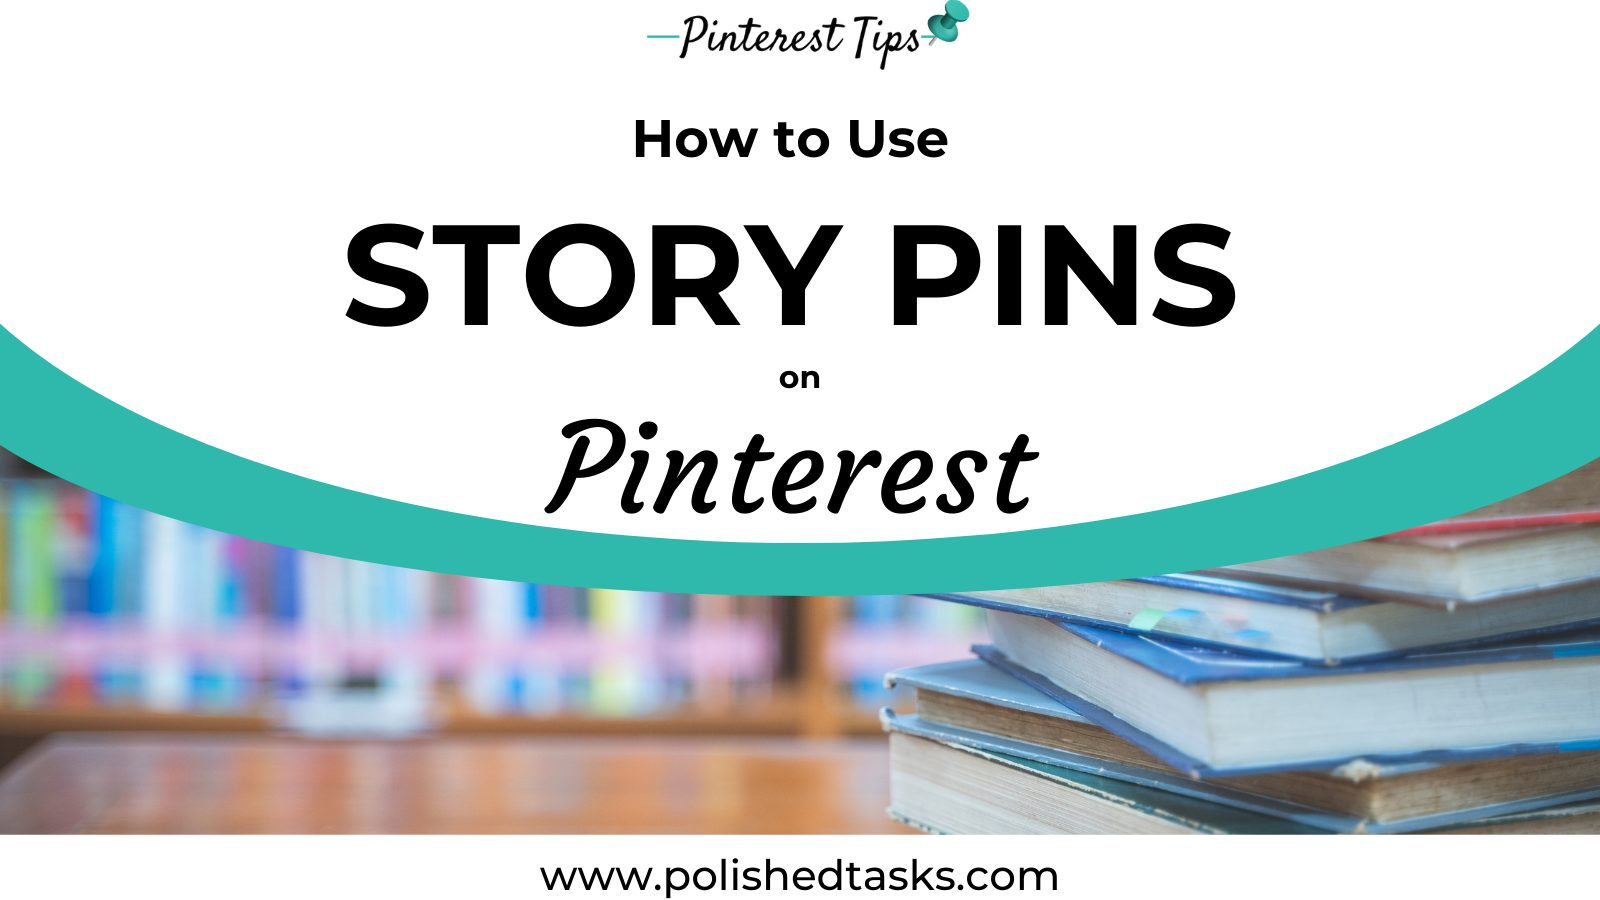 Use Pinterest Story Pins for Blog Traffic